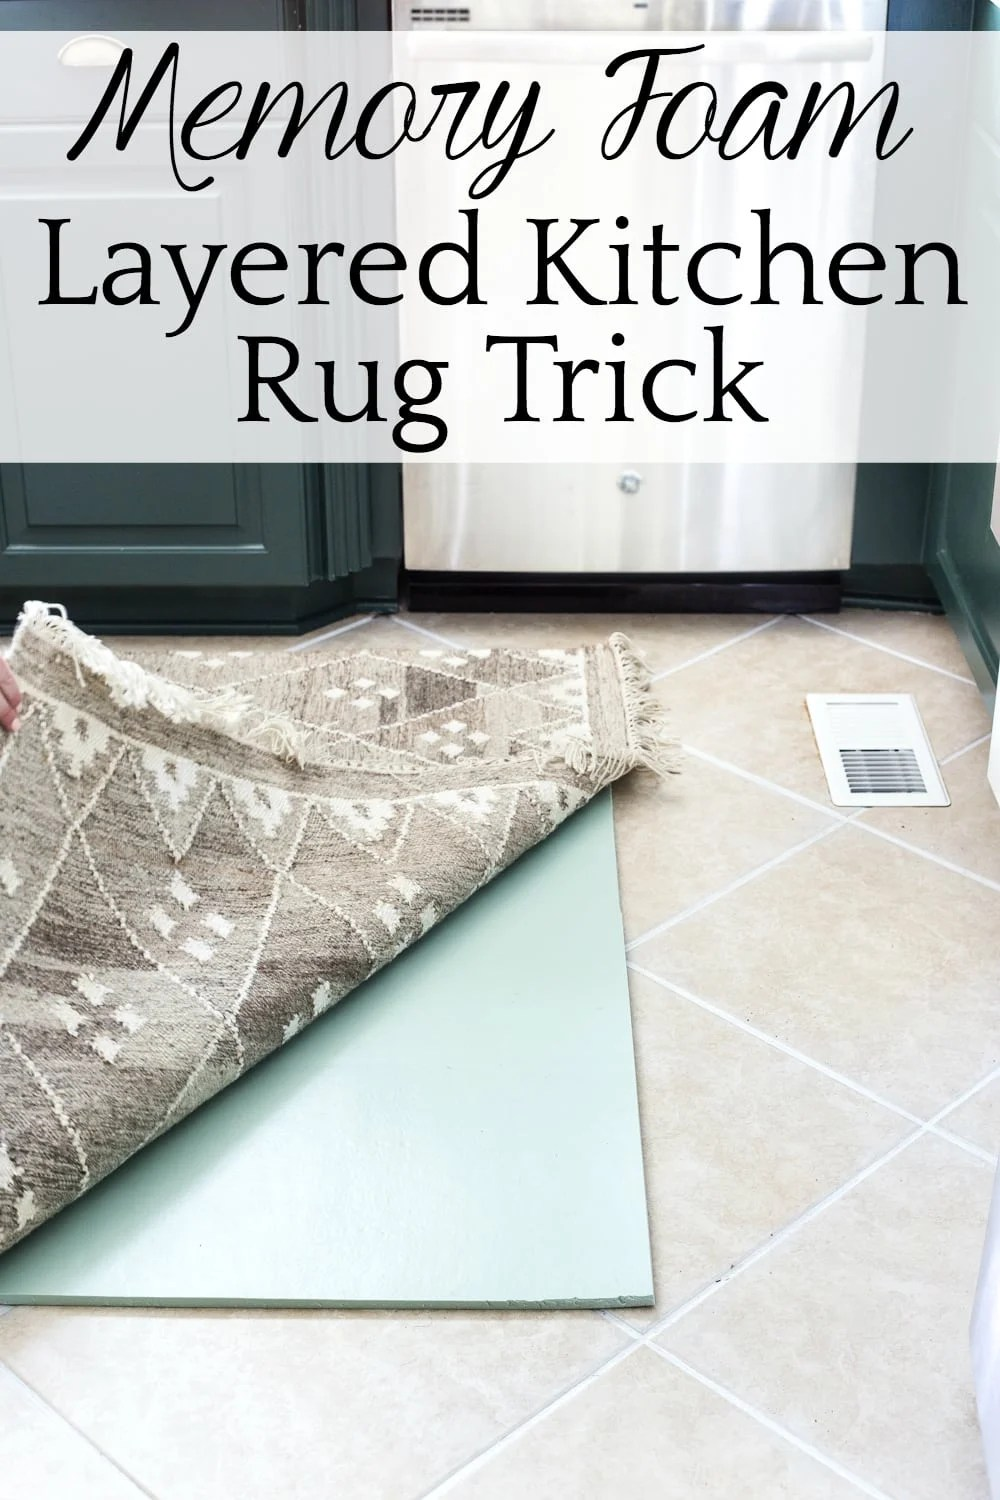 kitchen rug wooden cabinets memory foam layered and tile grout refresh bless er house how to cheaply easily add comfort your floor with